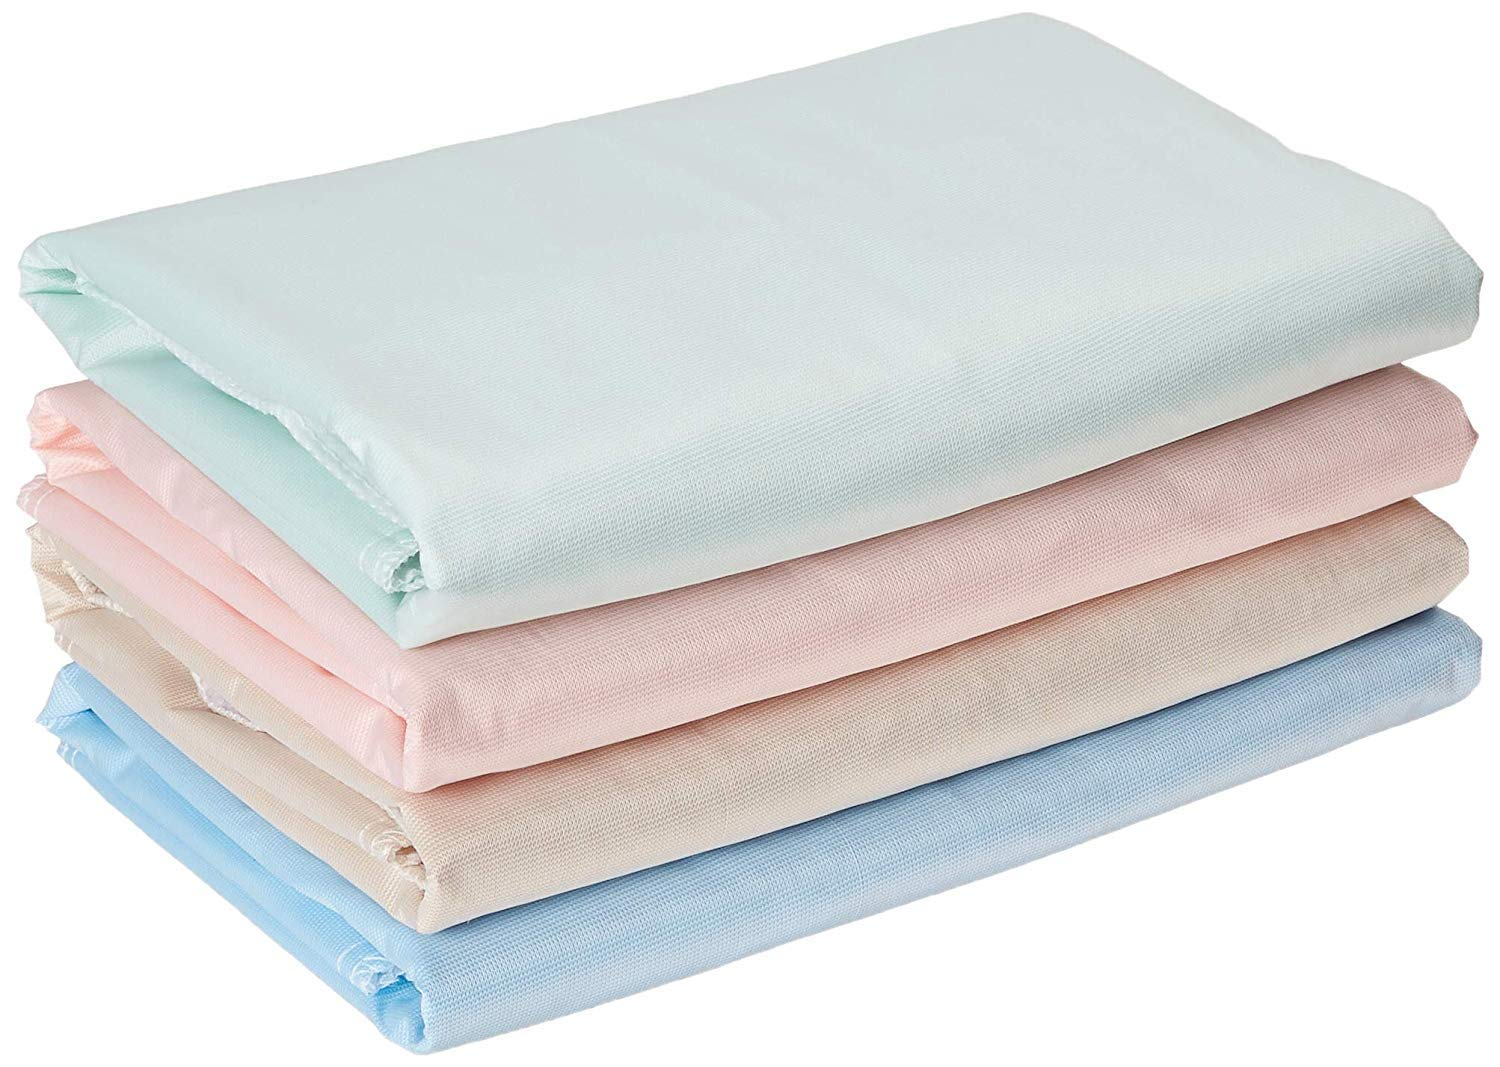 4 PACK Washable Bed Pads/Reusable Incontinence Underpads 24 x 36 - Blue, Green, Tan and Pink - Ideal for Children and Adults Wholesale Incontinence Protection / Cloth Chucks Bed Pads Washable